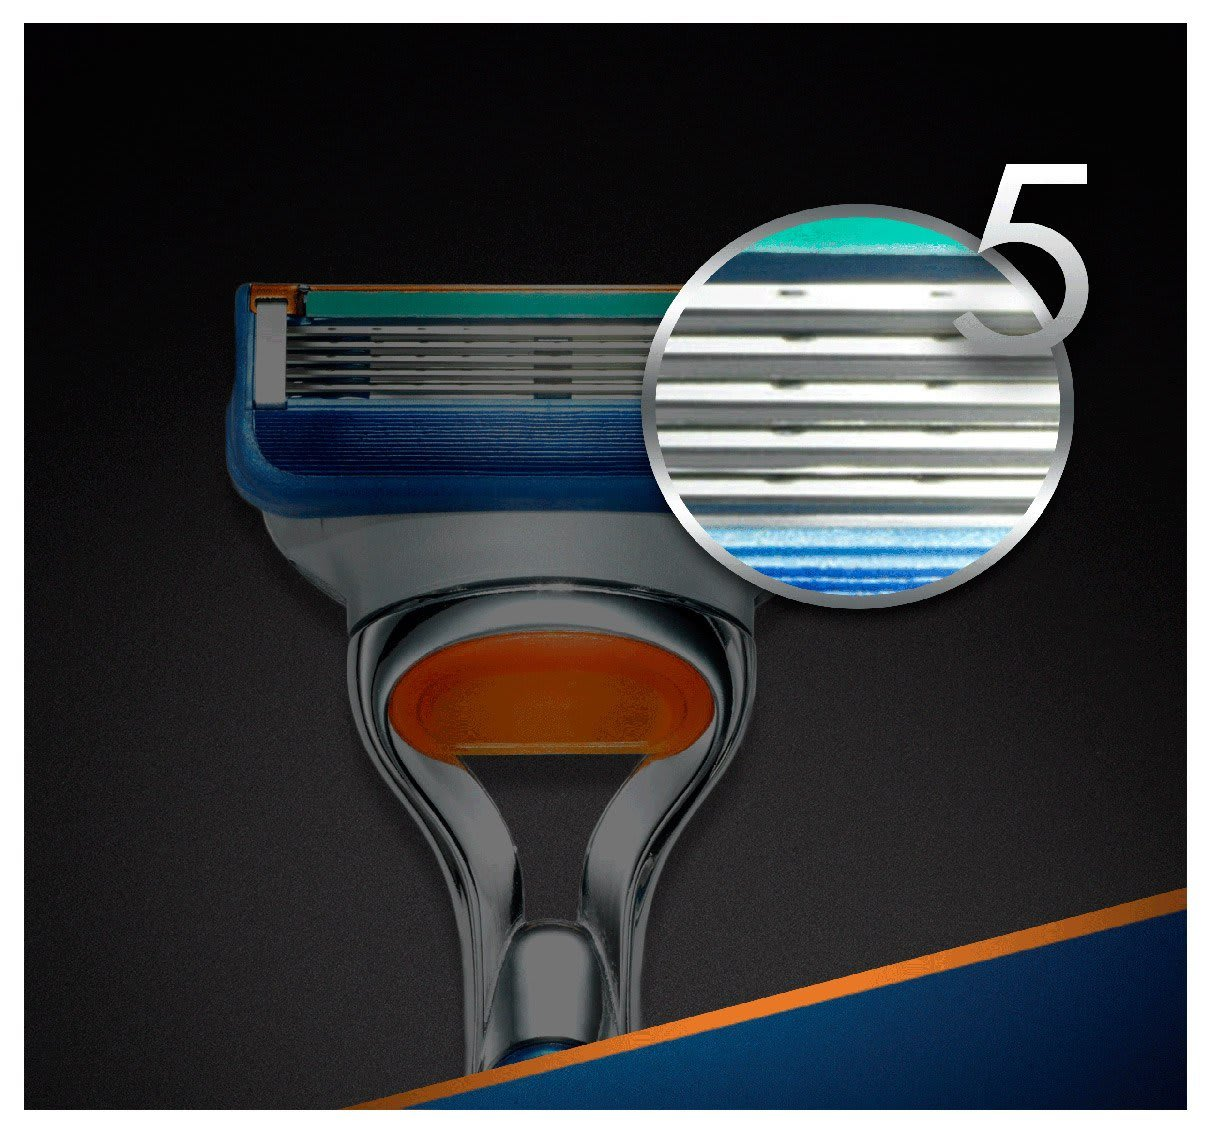 03_Fusion_Manual_Razor_Desktop